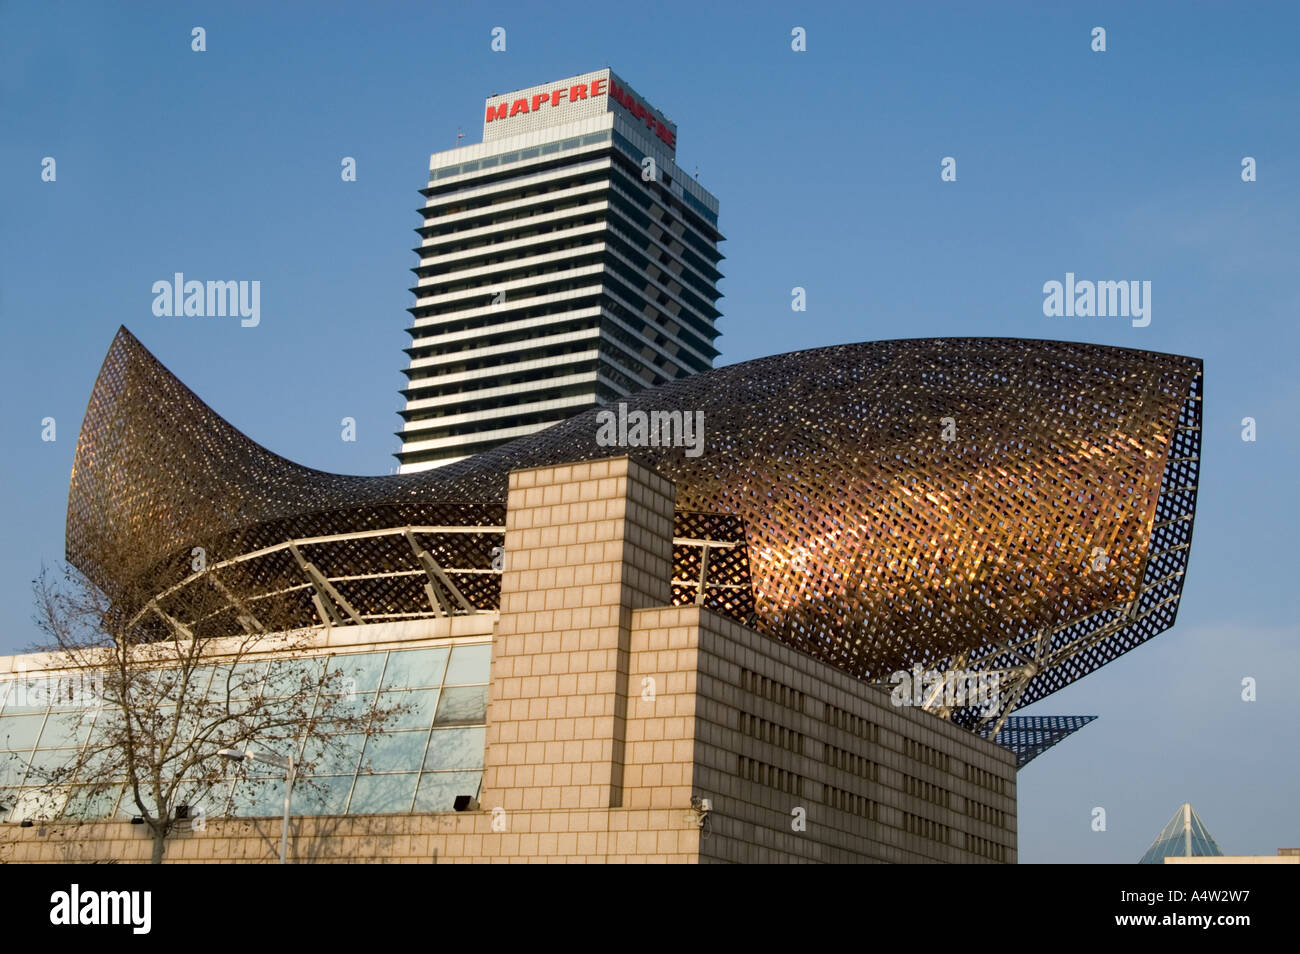 Fish sculpture by Frank Gehry at Port Olimpic in Barceloneta, Barcelona Spain - Stock Image